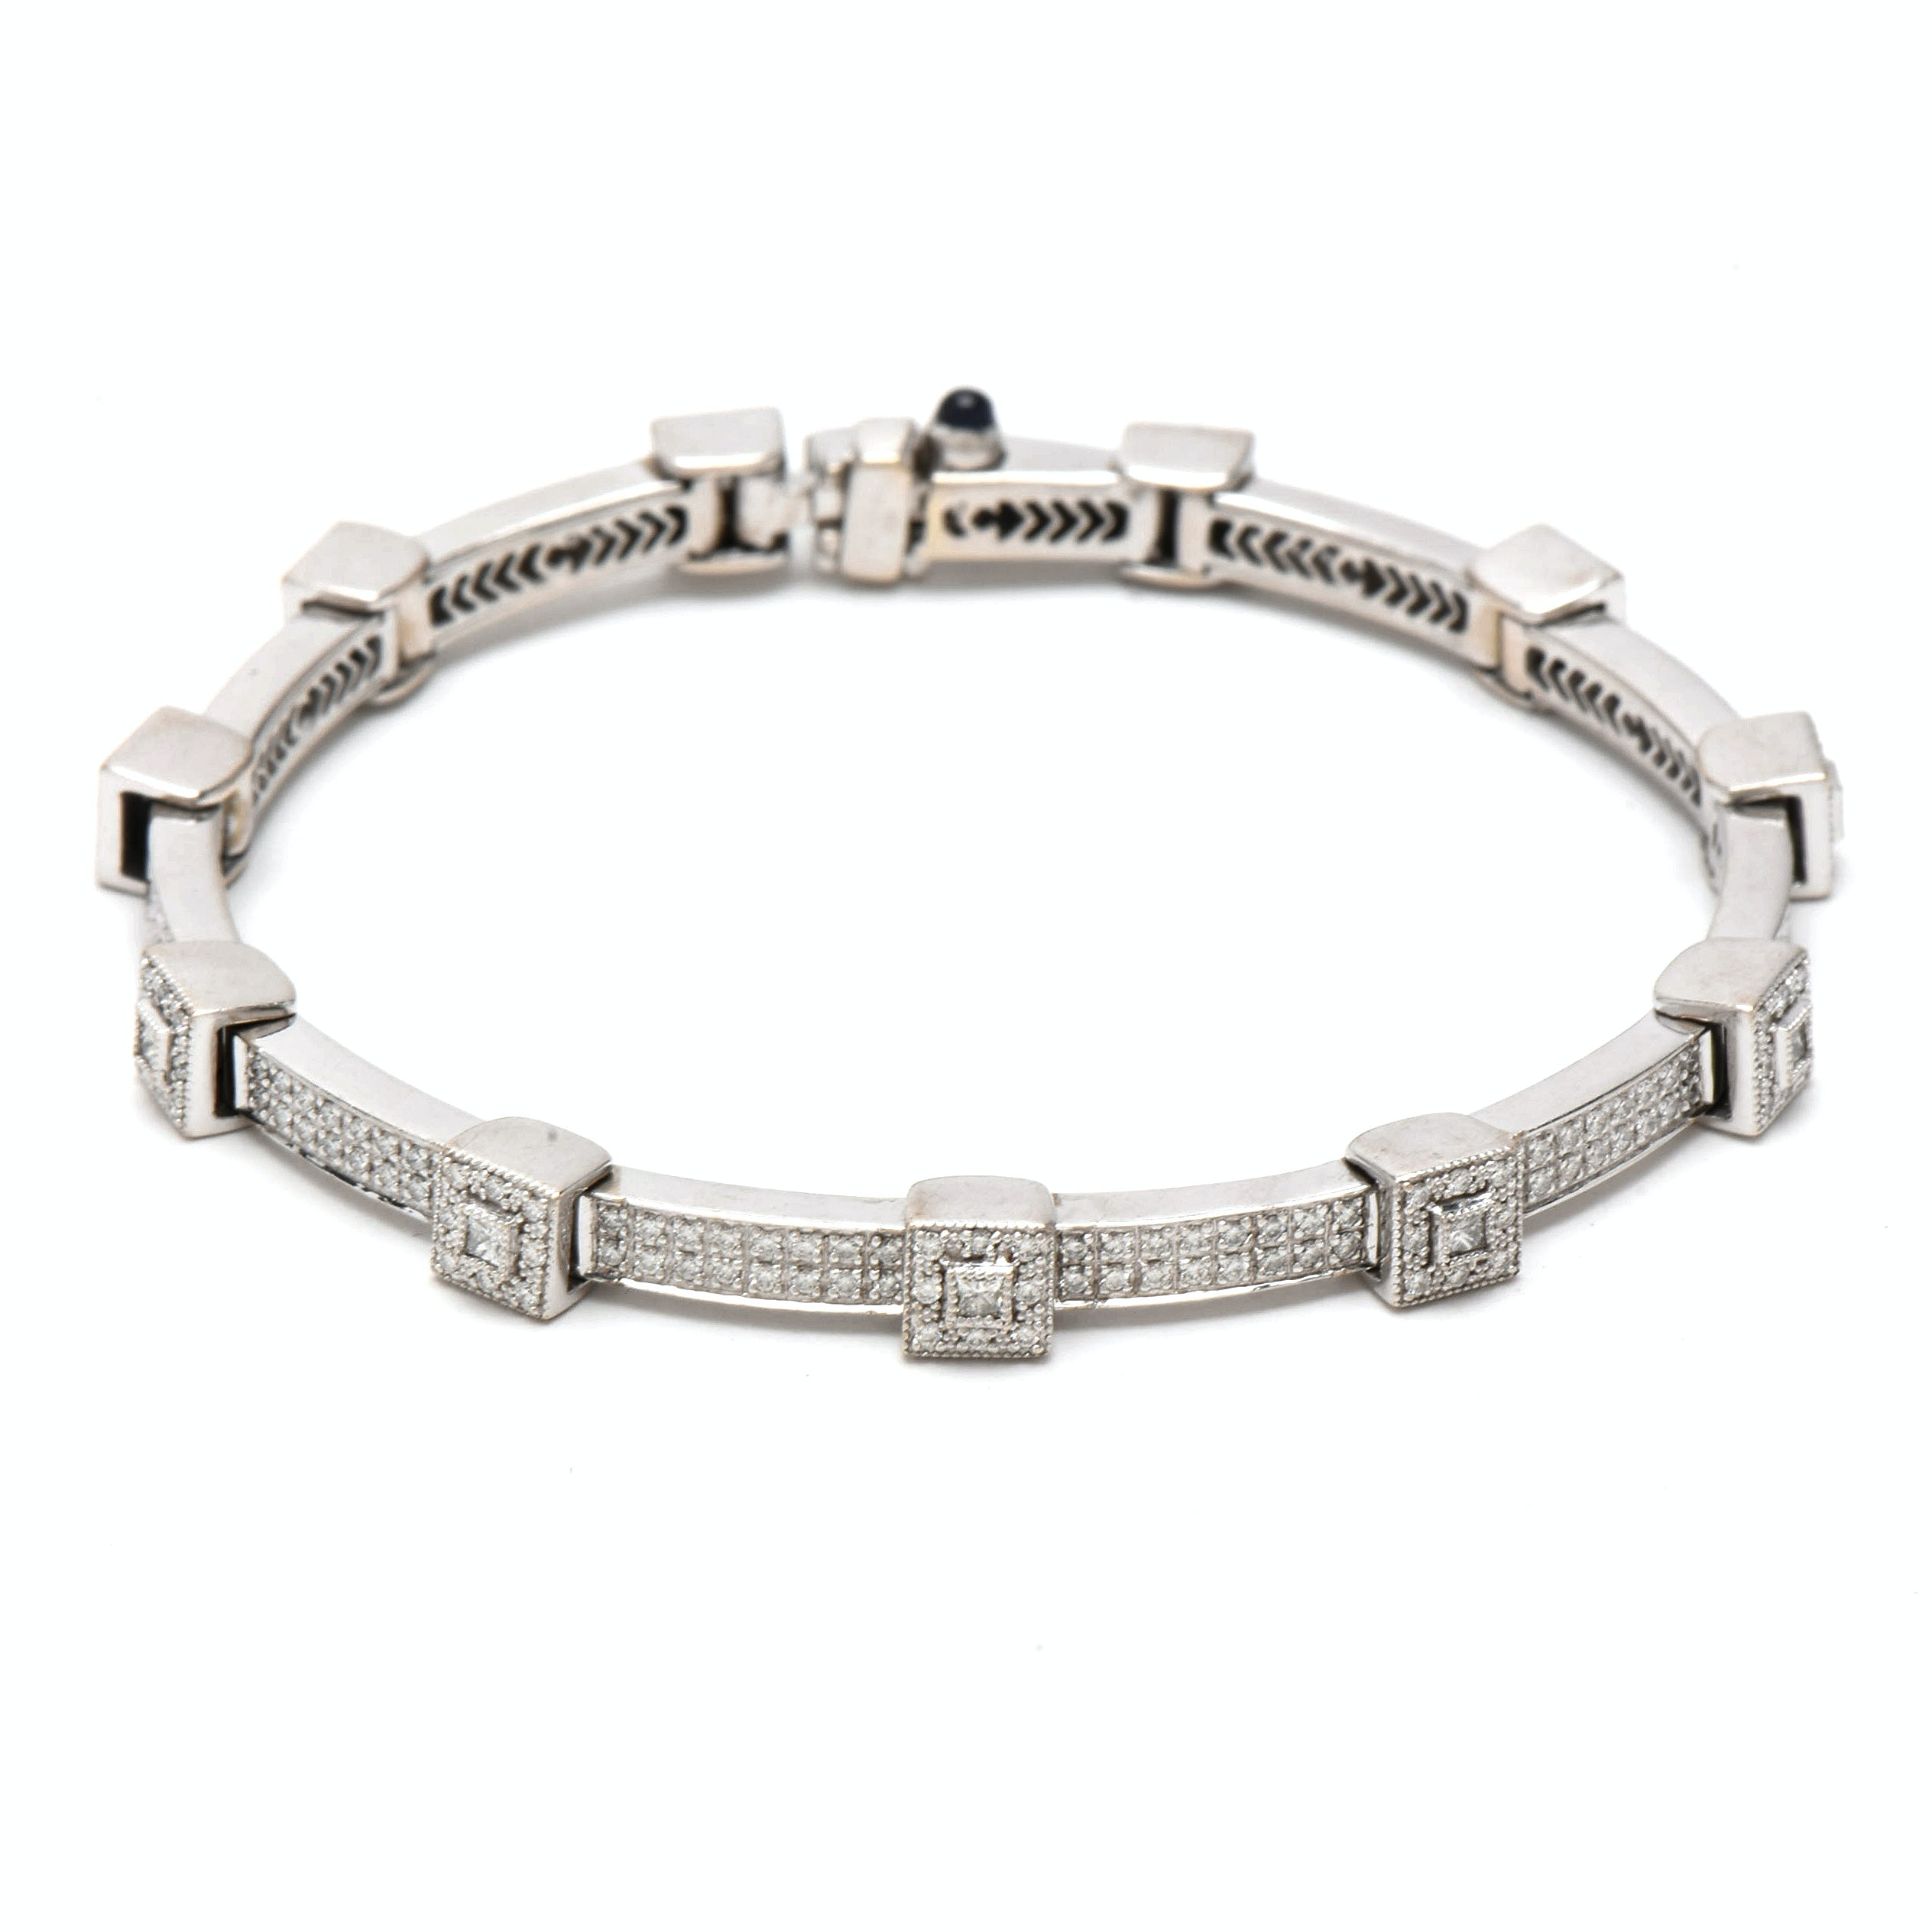 Charriol 18K White Gold 2.08 CTW Diamond Bracelet